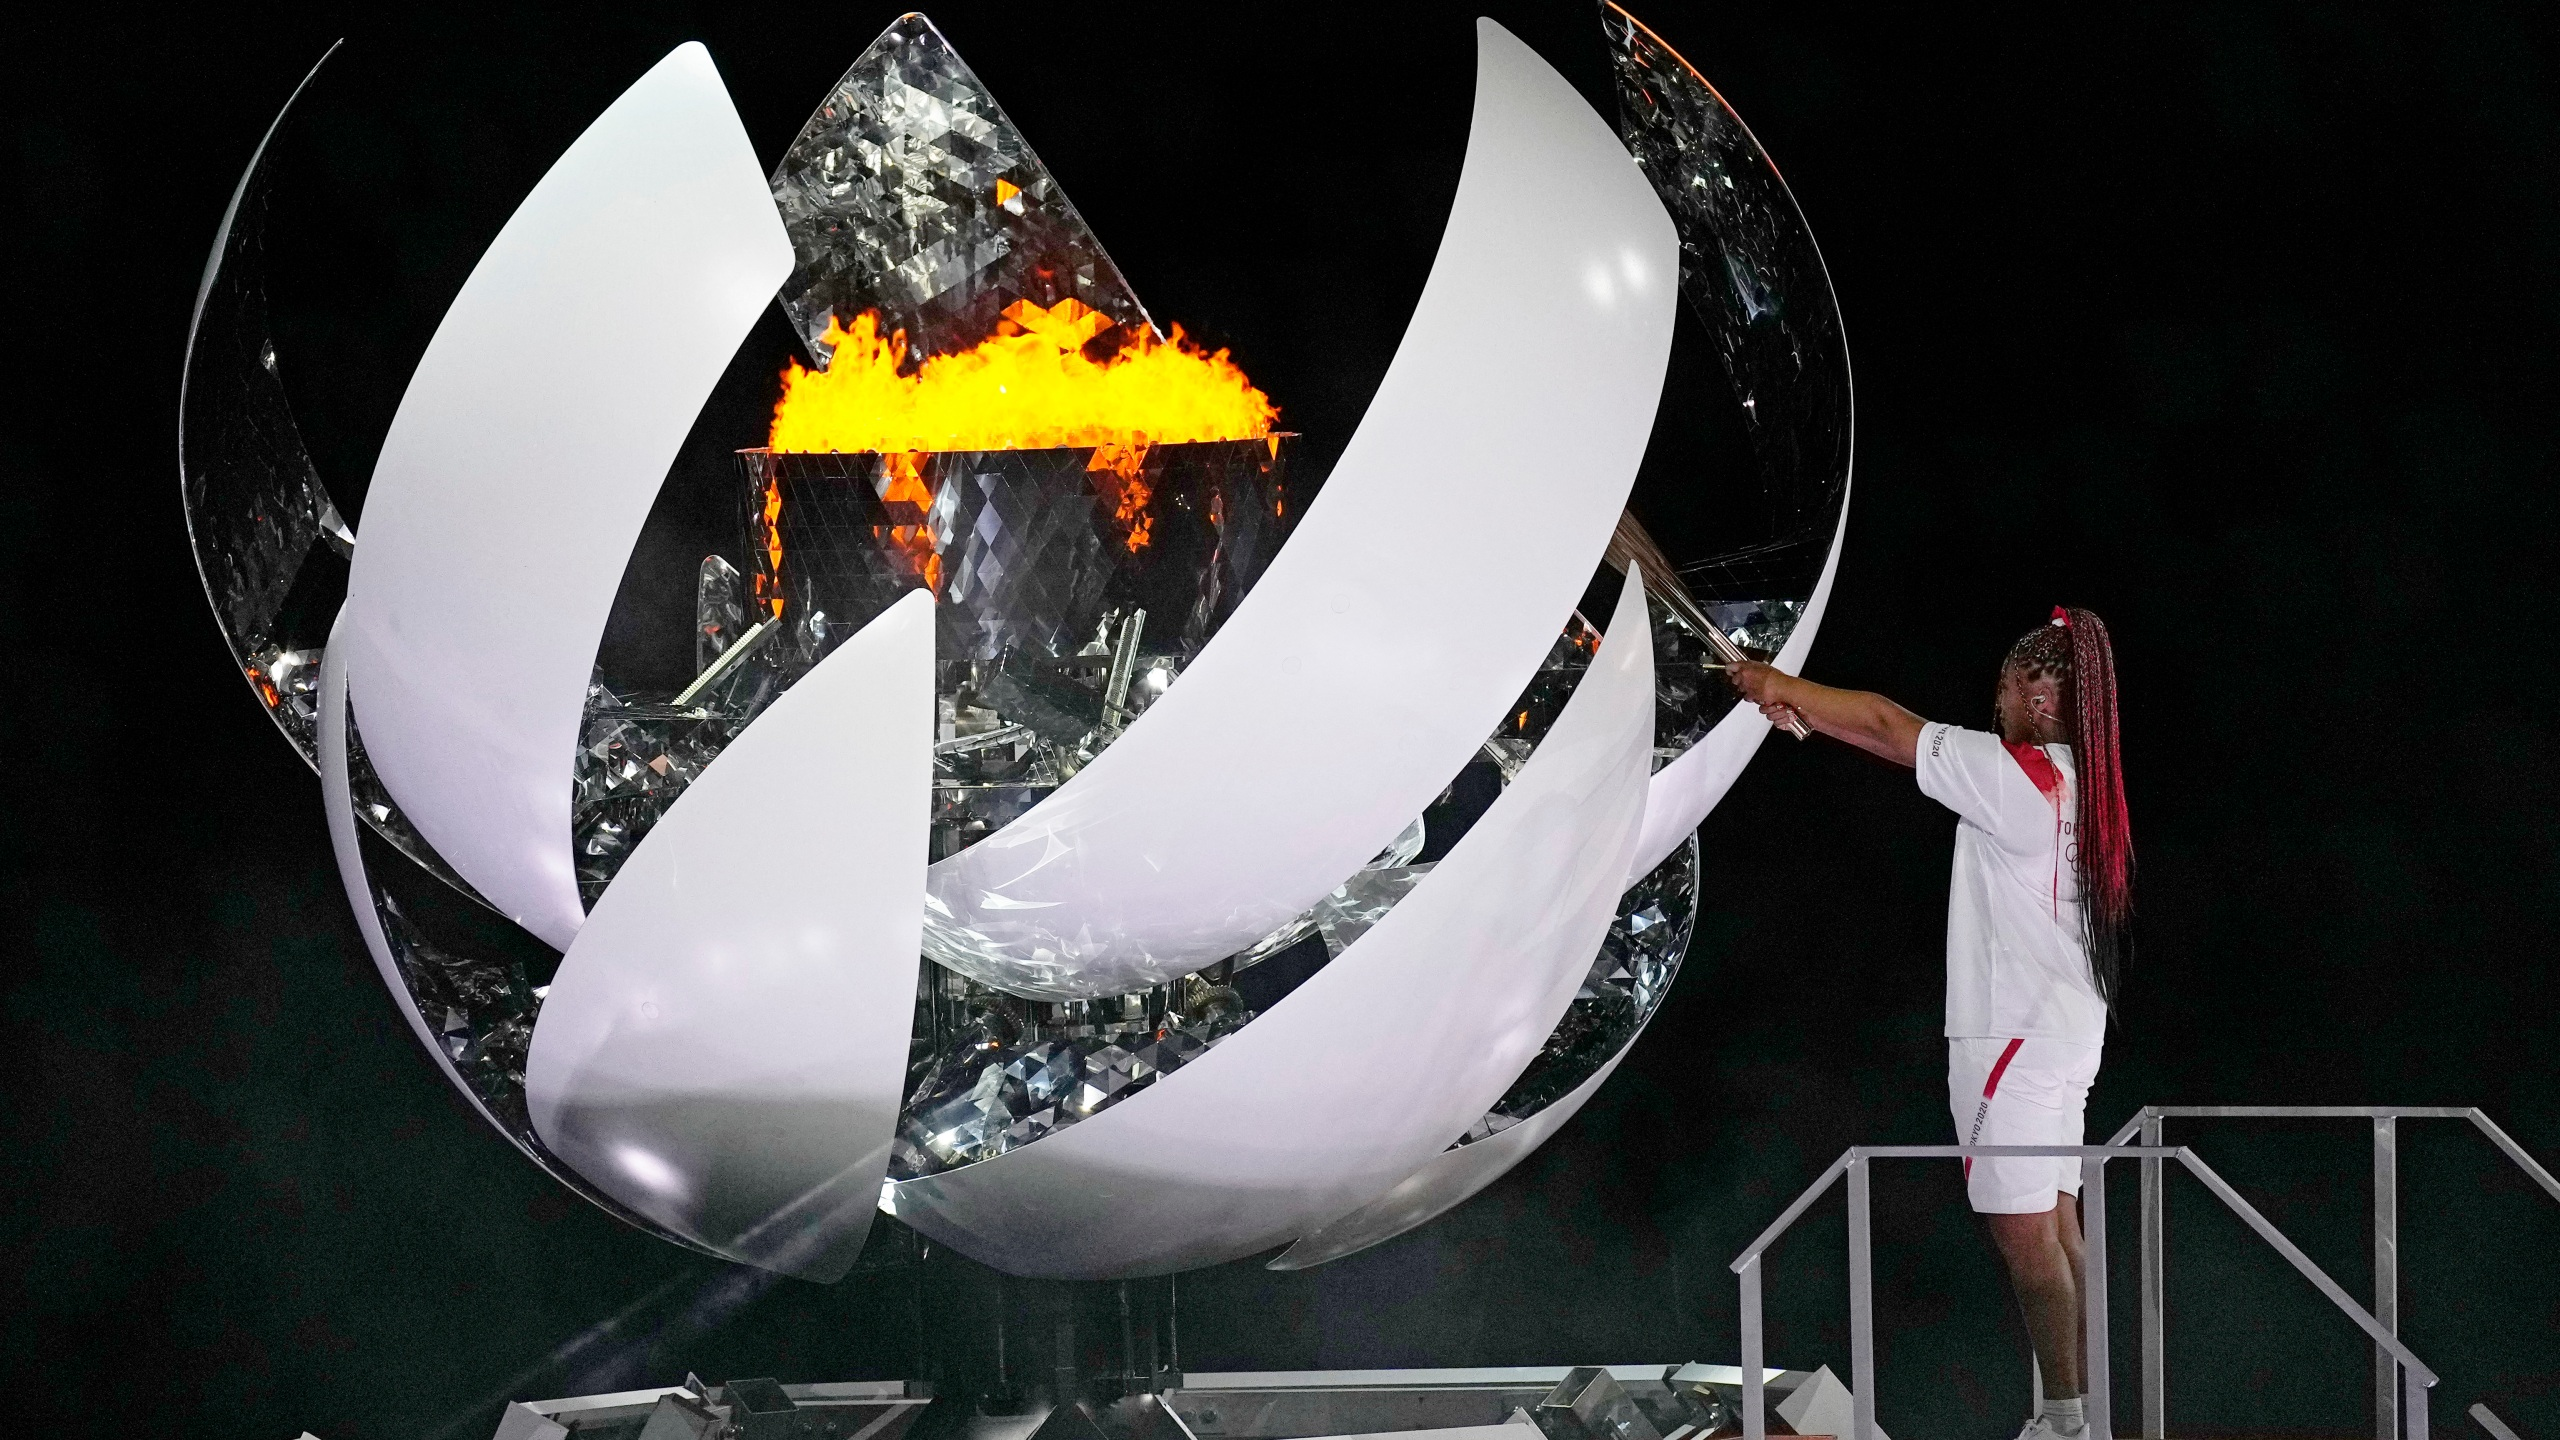 Naomi Osaka lights the Olympic flame during the opening ceremony in the Olympic Stadium at the 2020 Summer Olympics on July 23, 2021, in Tokyo. (David J. Phillip/Associated Press)